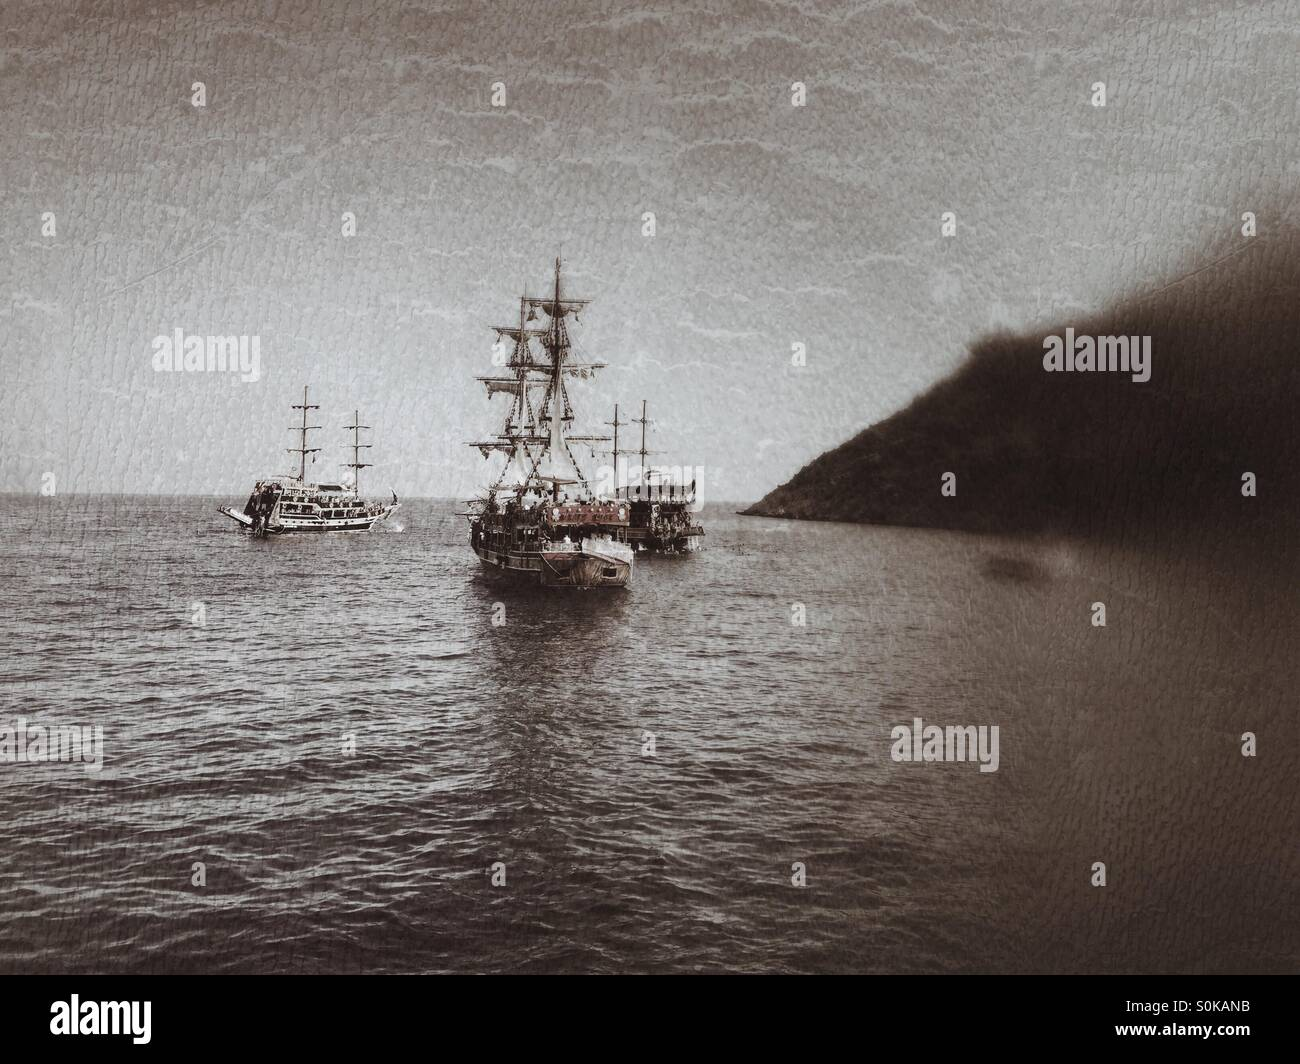 Pirates ships sailing in the sea - Stock Image